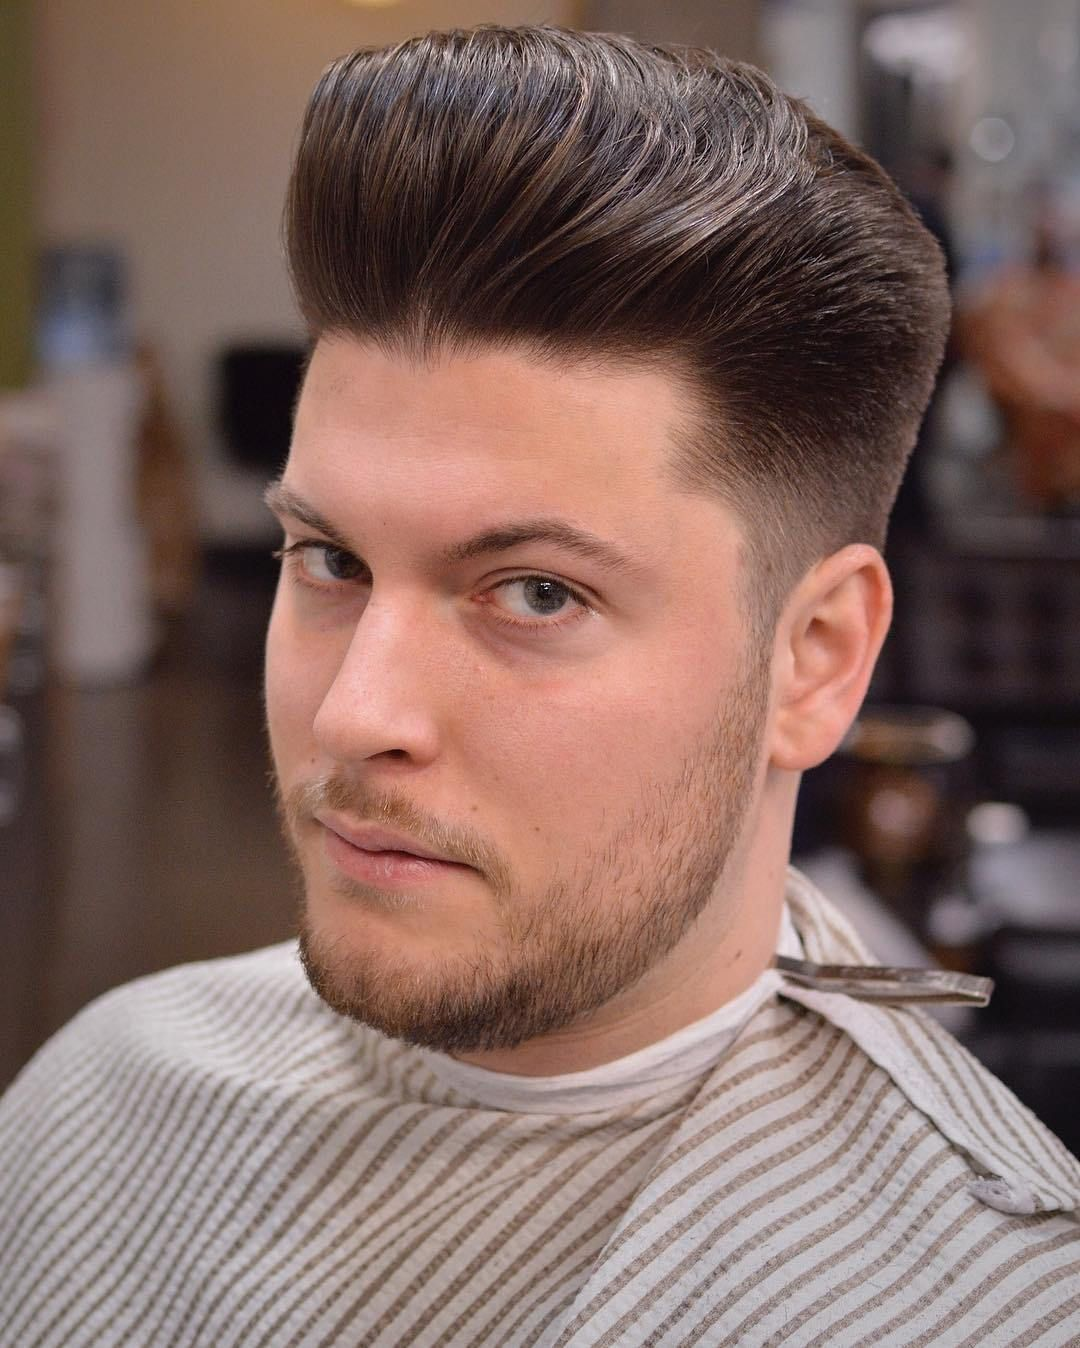 Classic Pompadour Round Face Men Hairstyles For Round Faces Cool Hairstyles